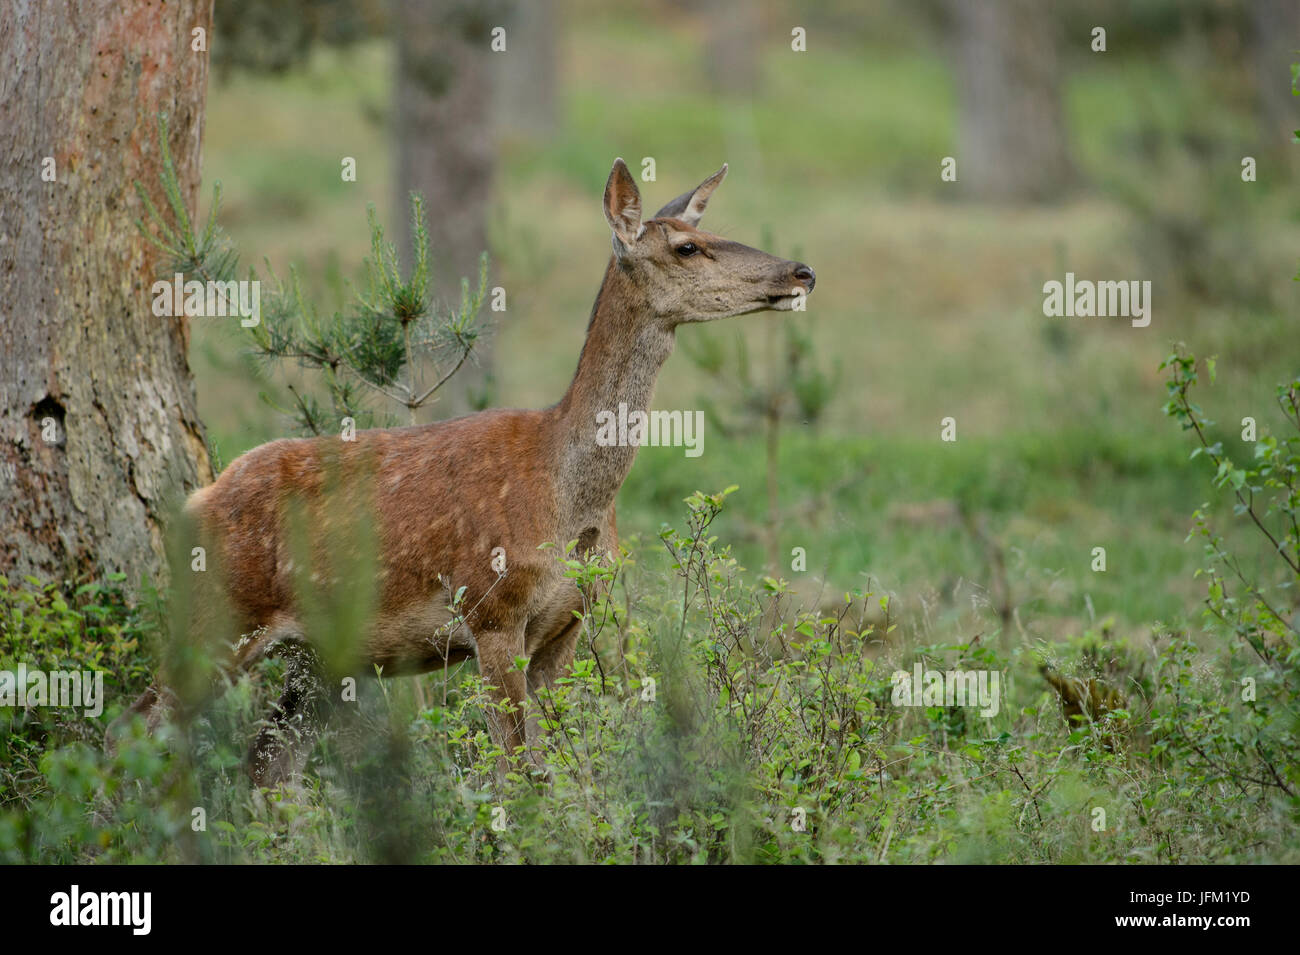 Red deer hind smelling in the air. Hoge Veluwe National Park, Netherlands - Stock Image